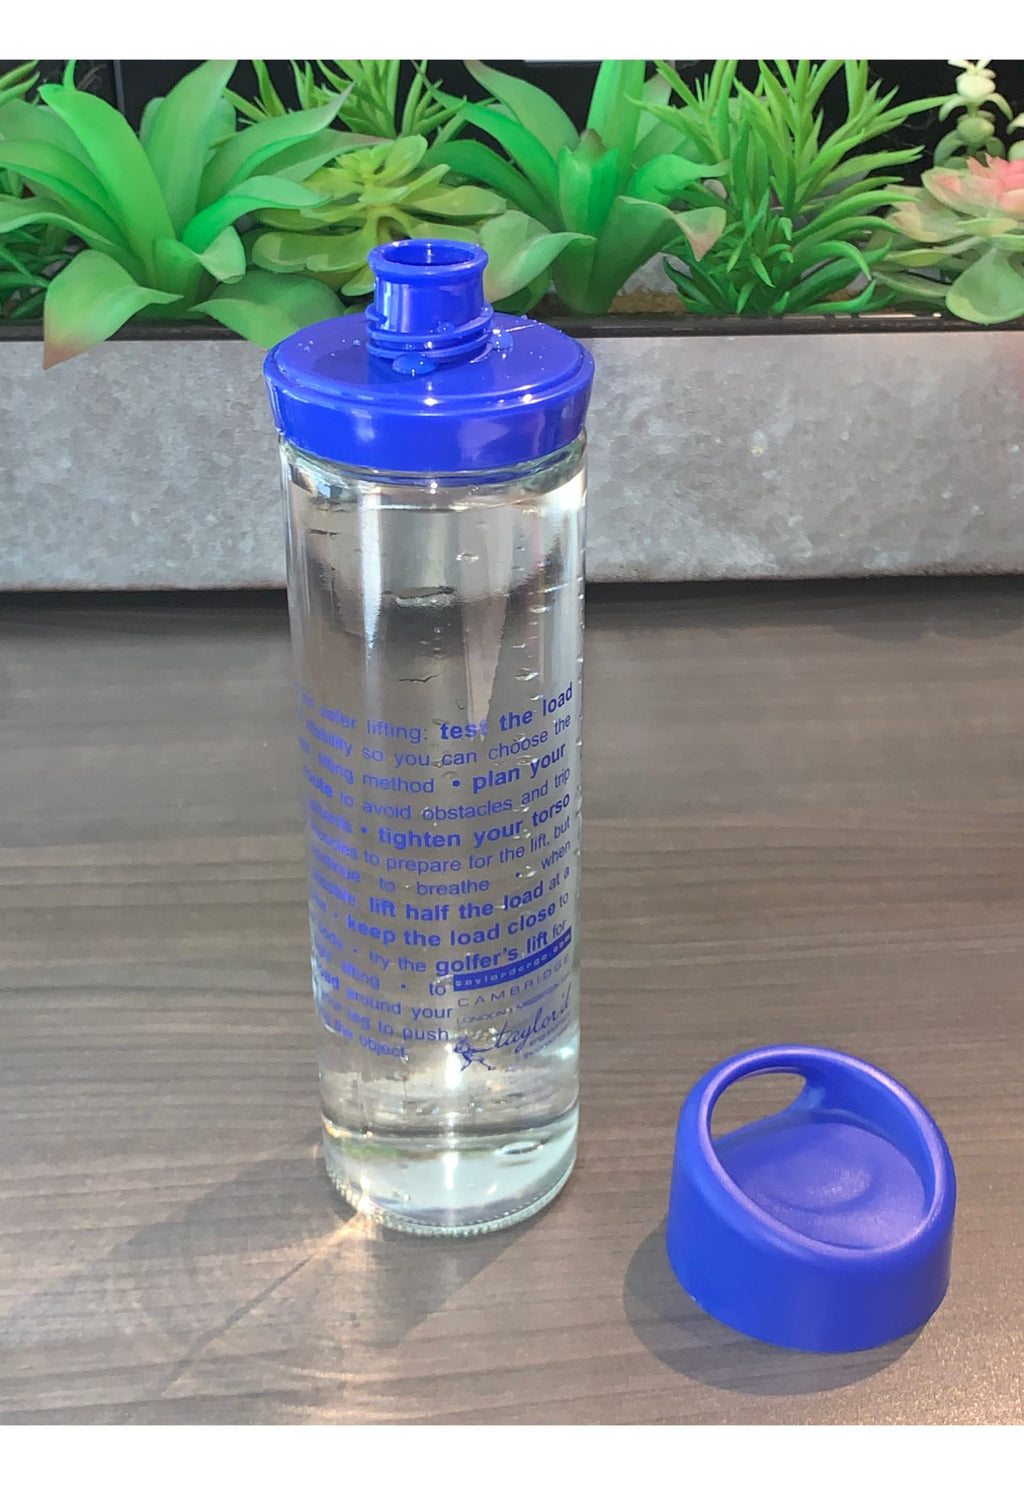 photograph of glass water bottle with blue lid and spout, showing ergonomics lifting tips imprint